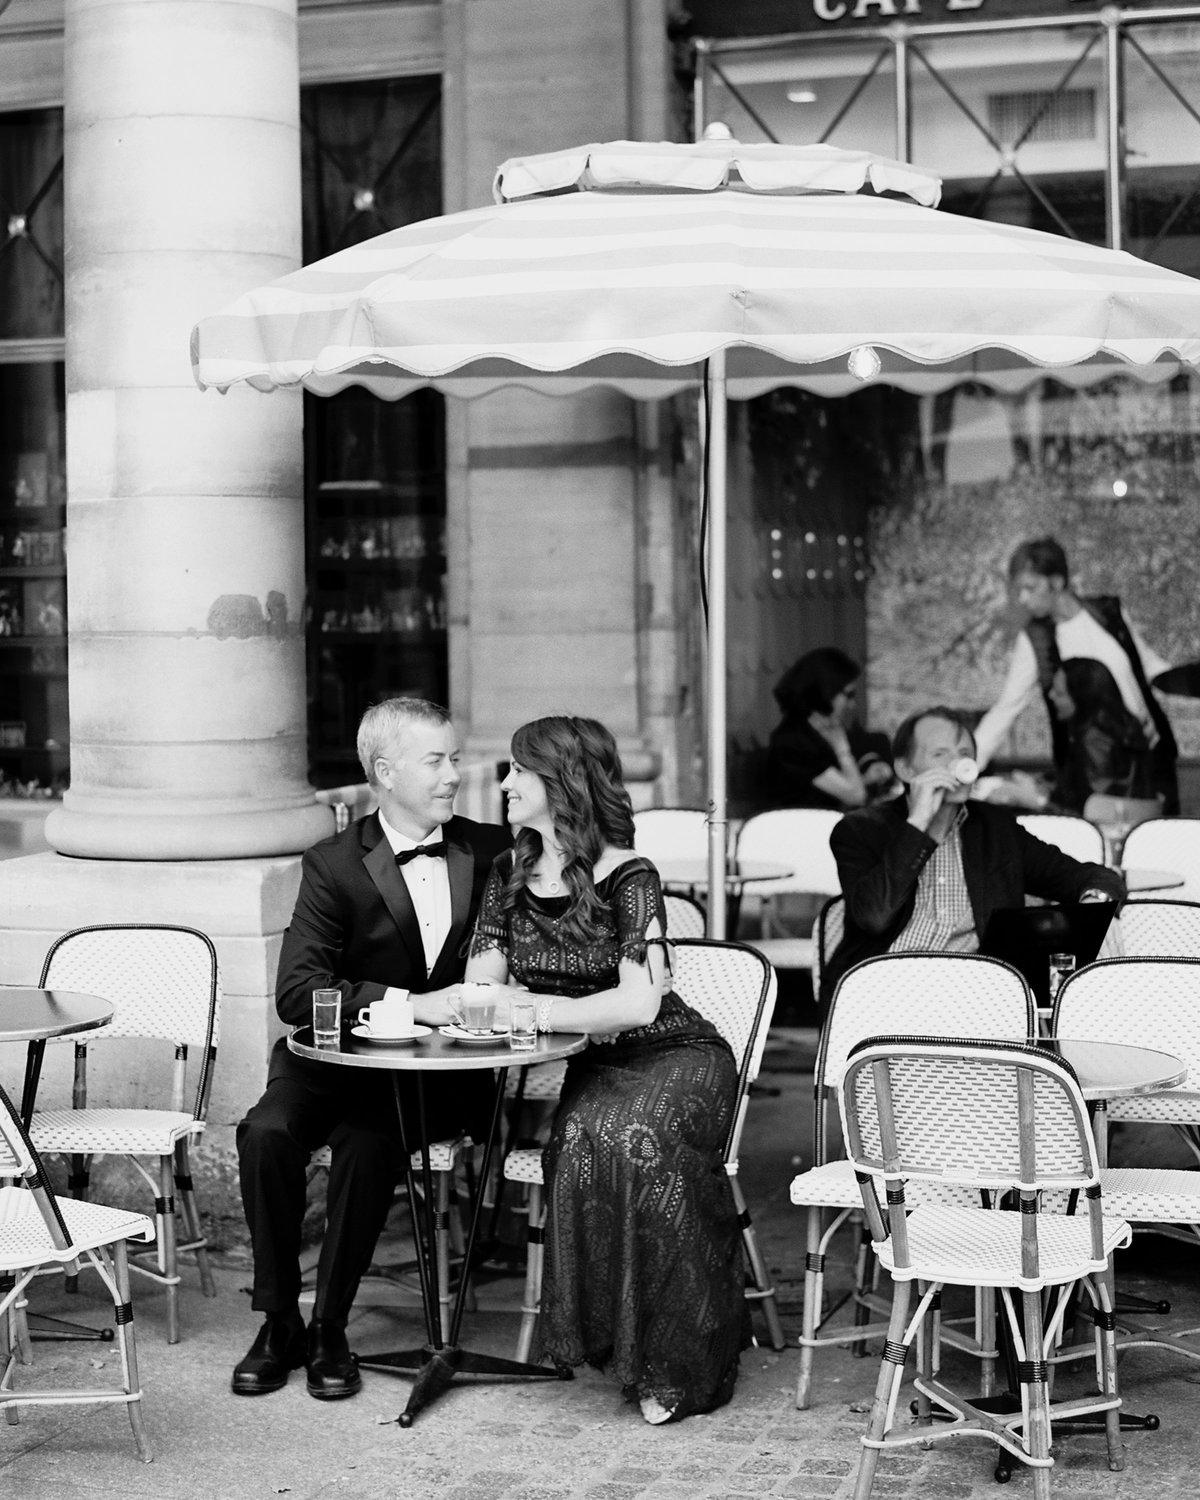 Anniversary celebration photography in Paris 87